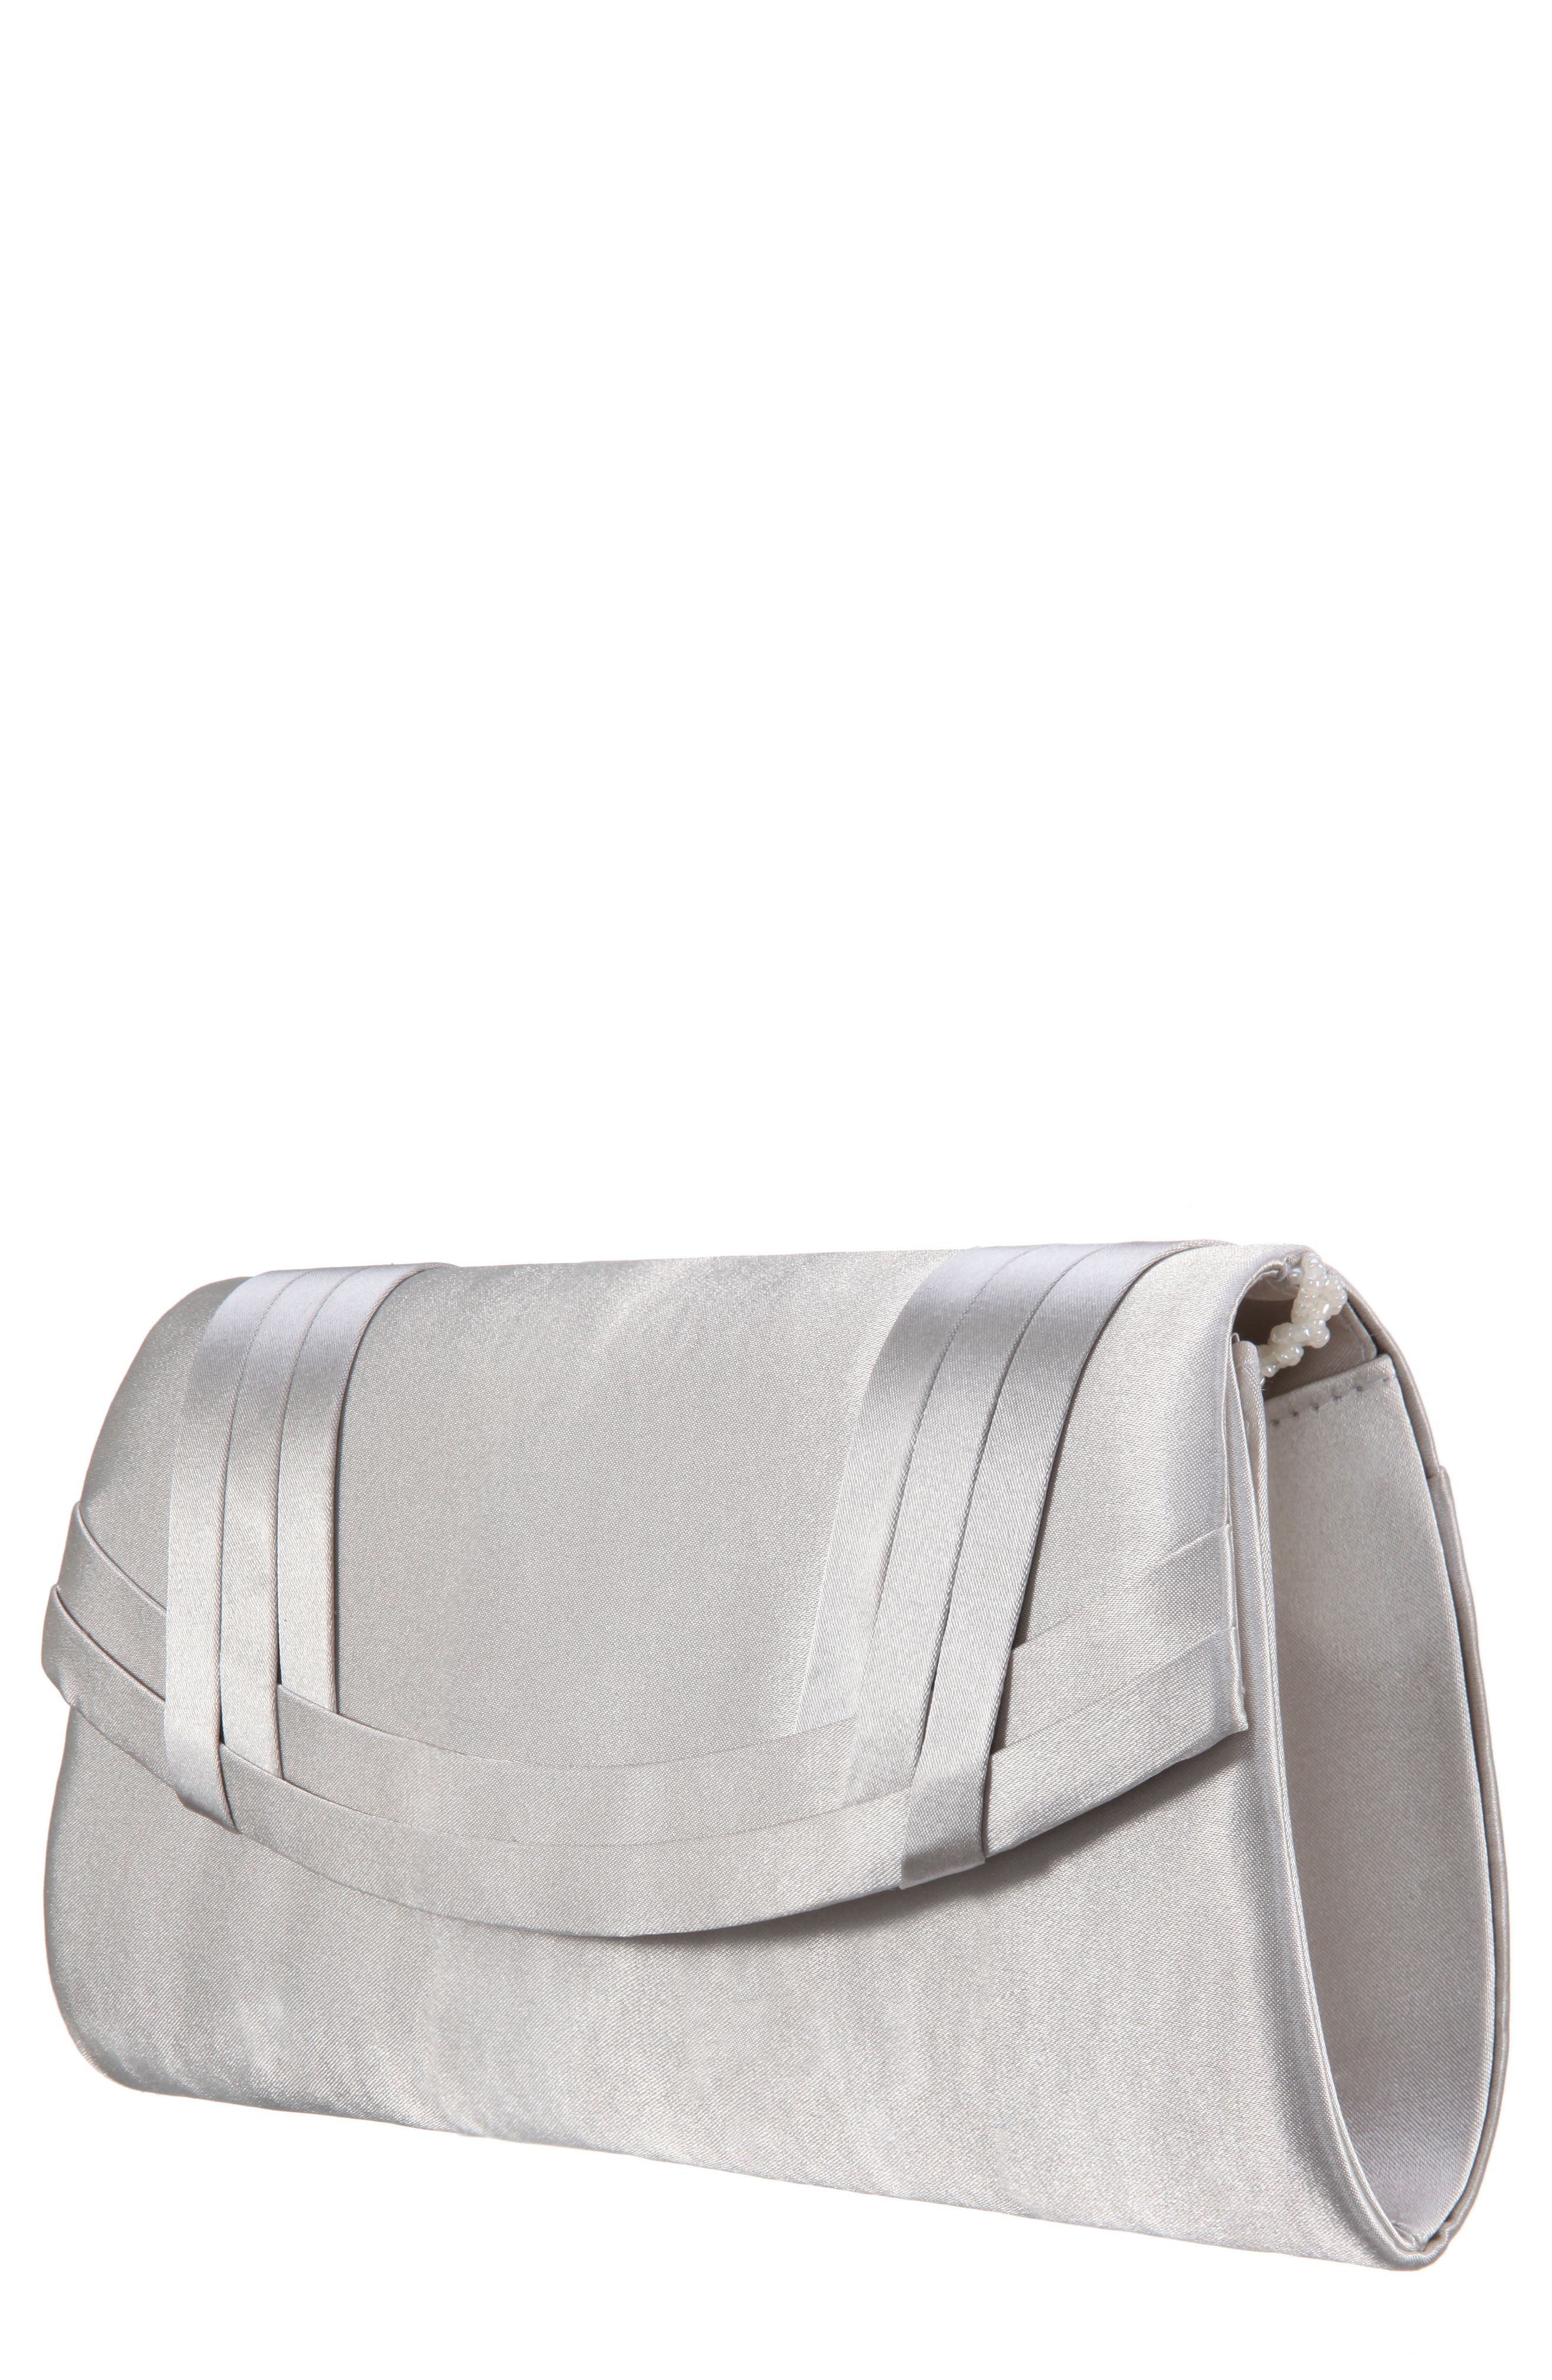 Avis Pleated Classic Clutch,                             Main thumbnail 1, color,                             OYSTER